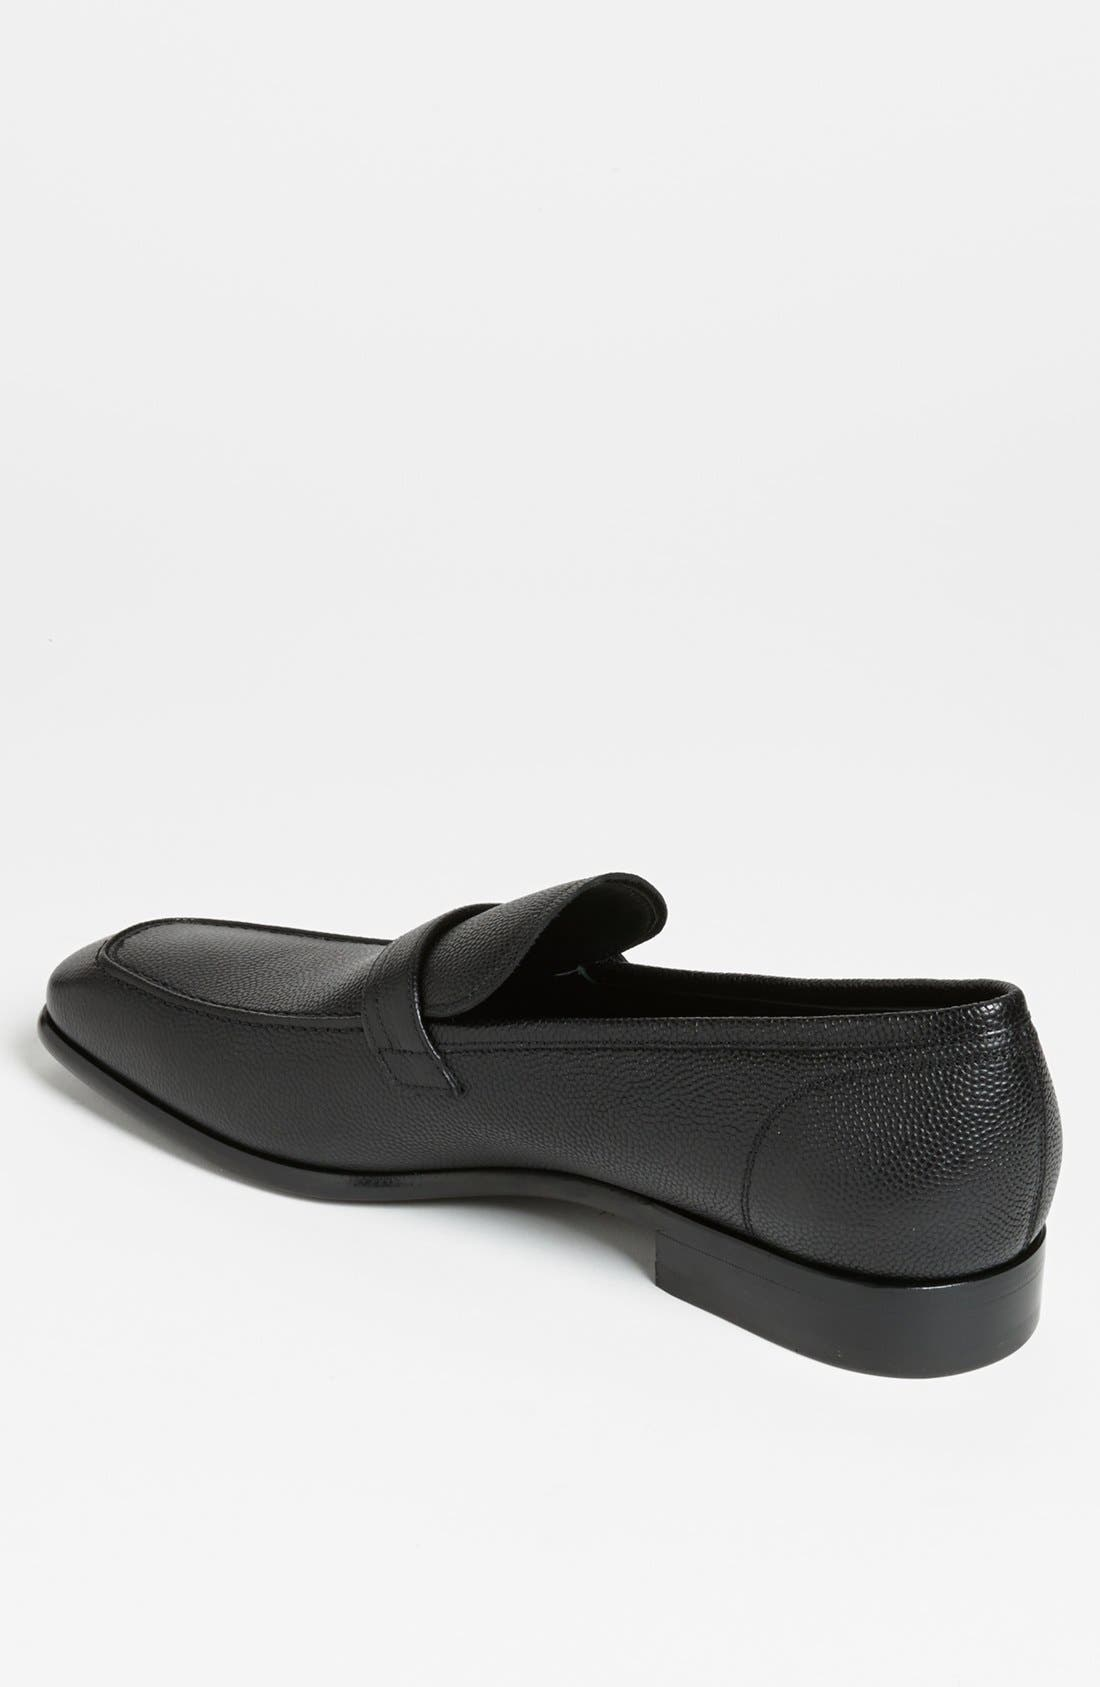 Alternate Image 2  - Salvatore Ferragamo 'Svezia' Loafer